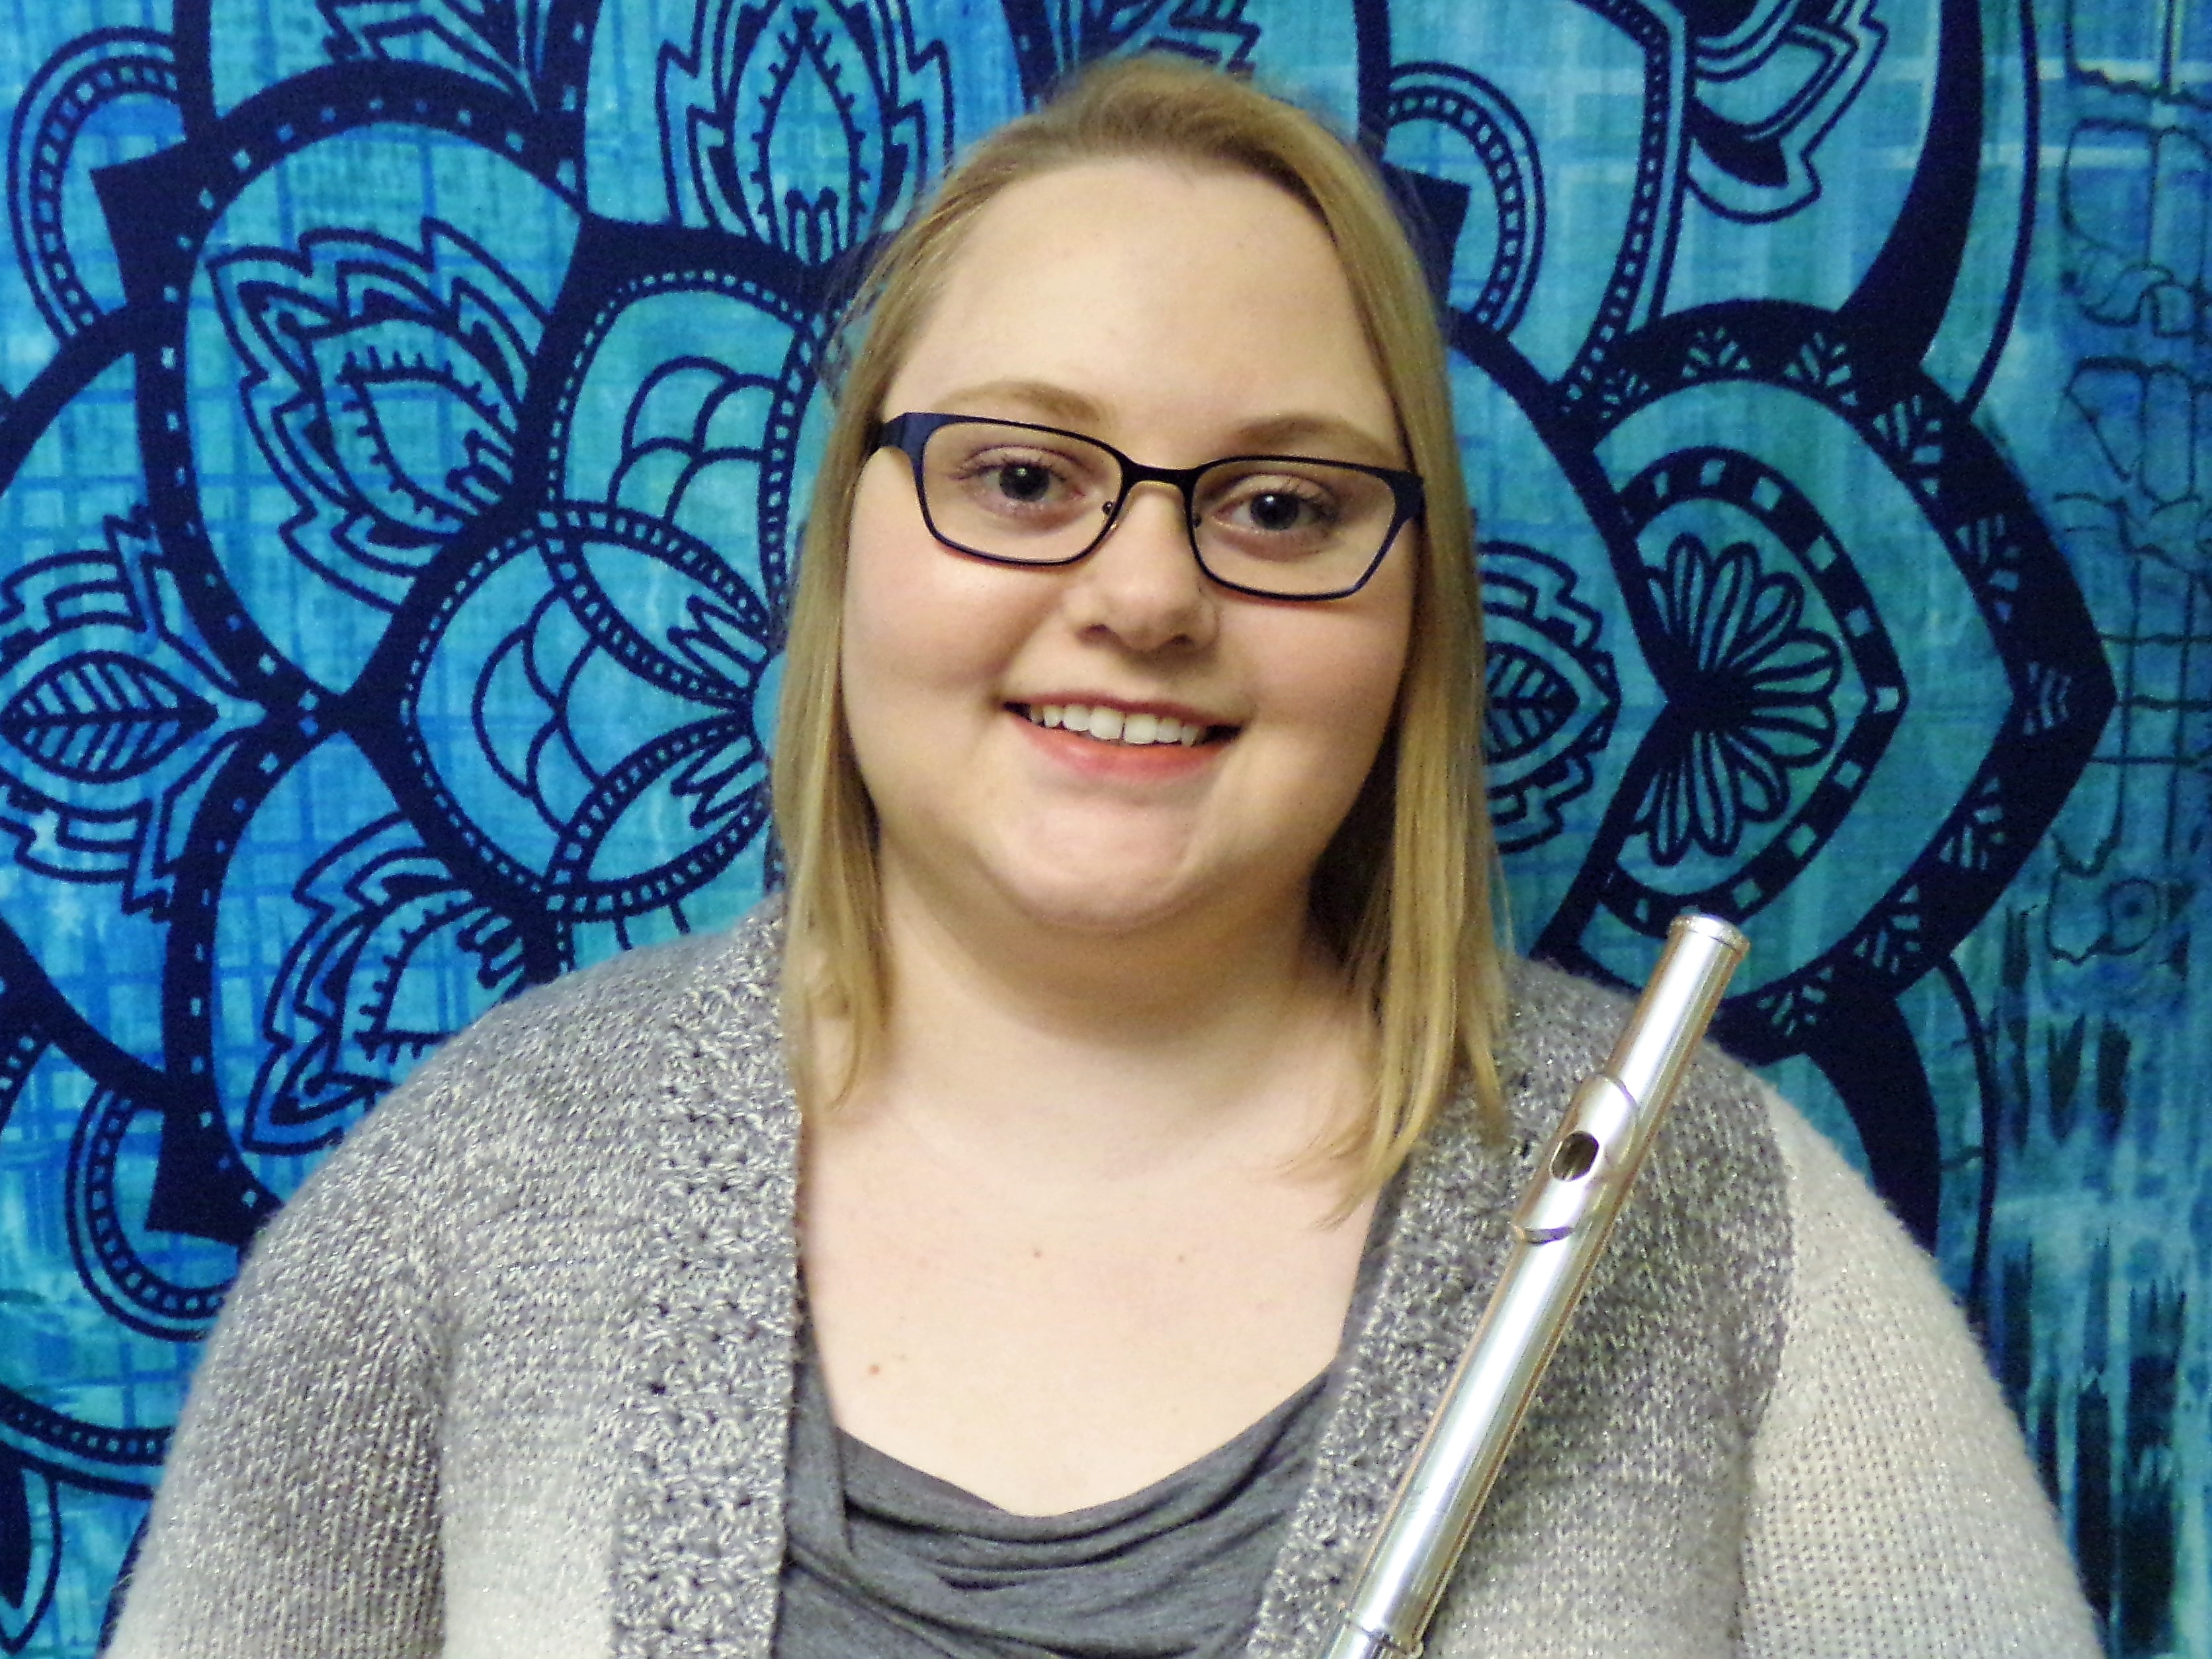 Josie Born, a music education major from Elkton, was chosen to serve in the National Flute Association Convention internship program in Orlando August 2018.